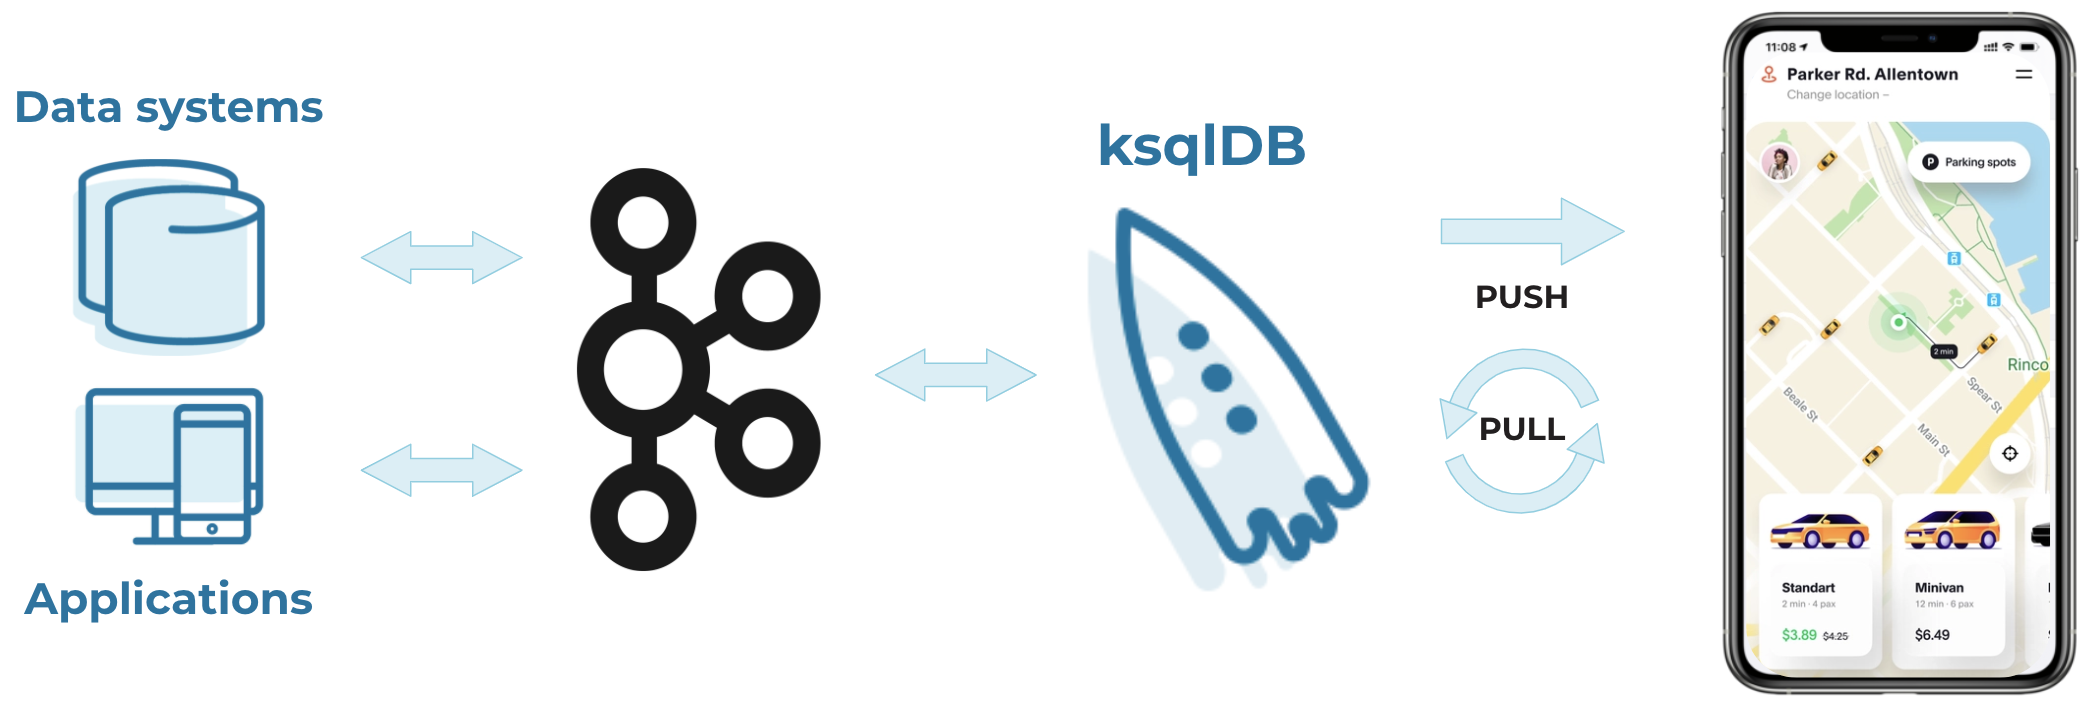 ksqlDB simplifies the underlying architecture to easily build innovative, streaming apps